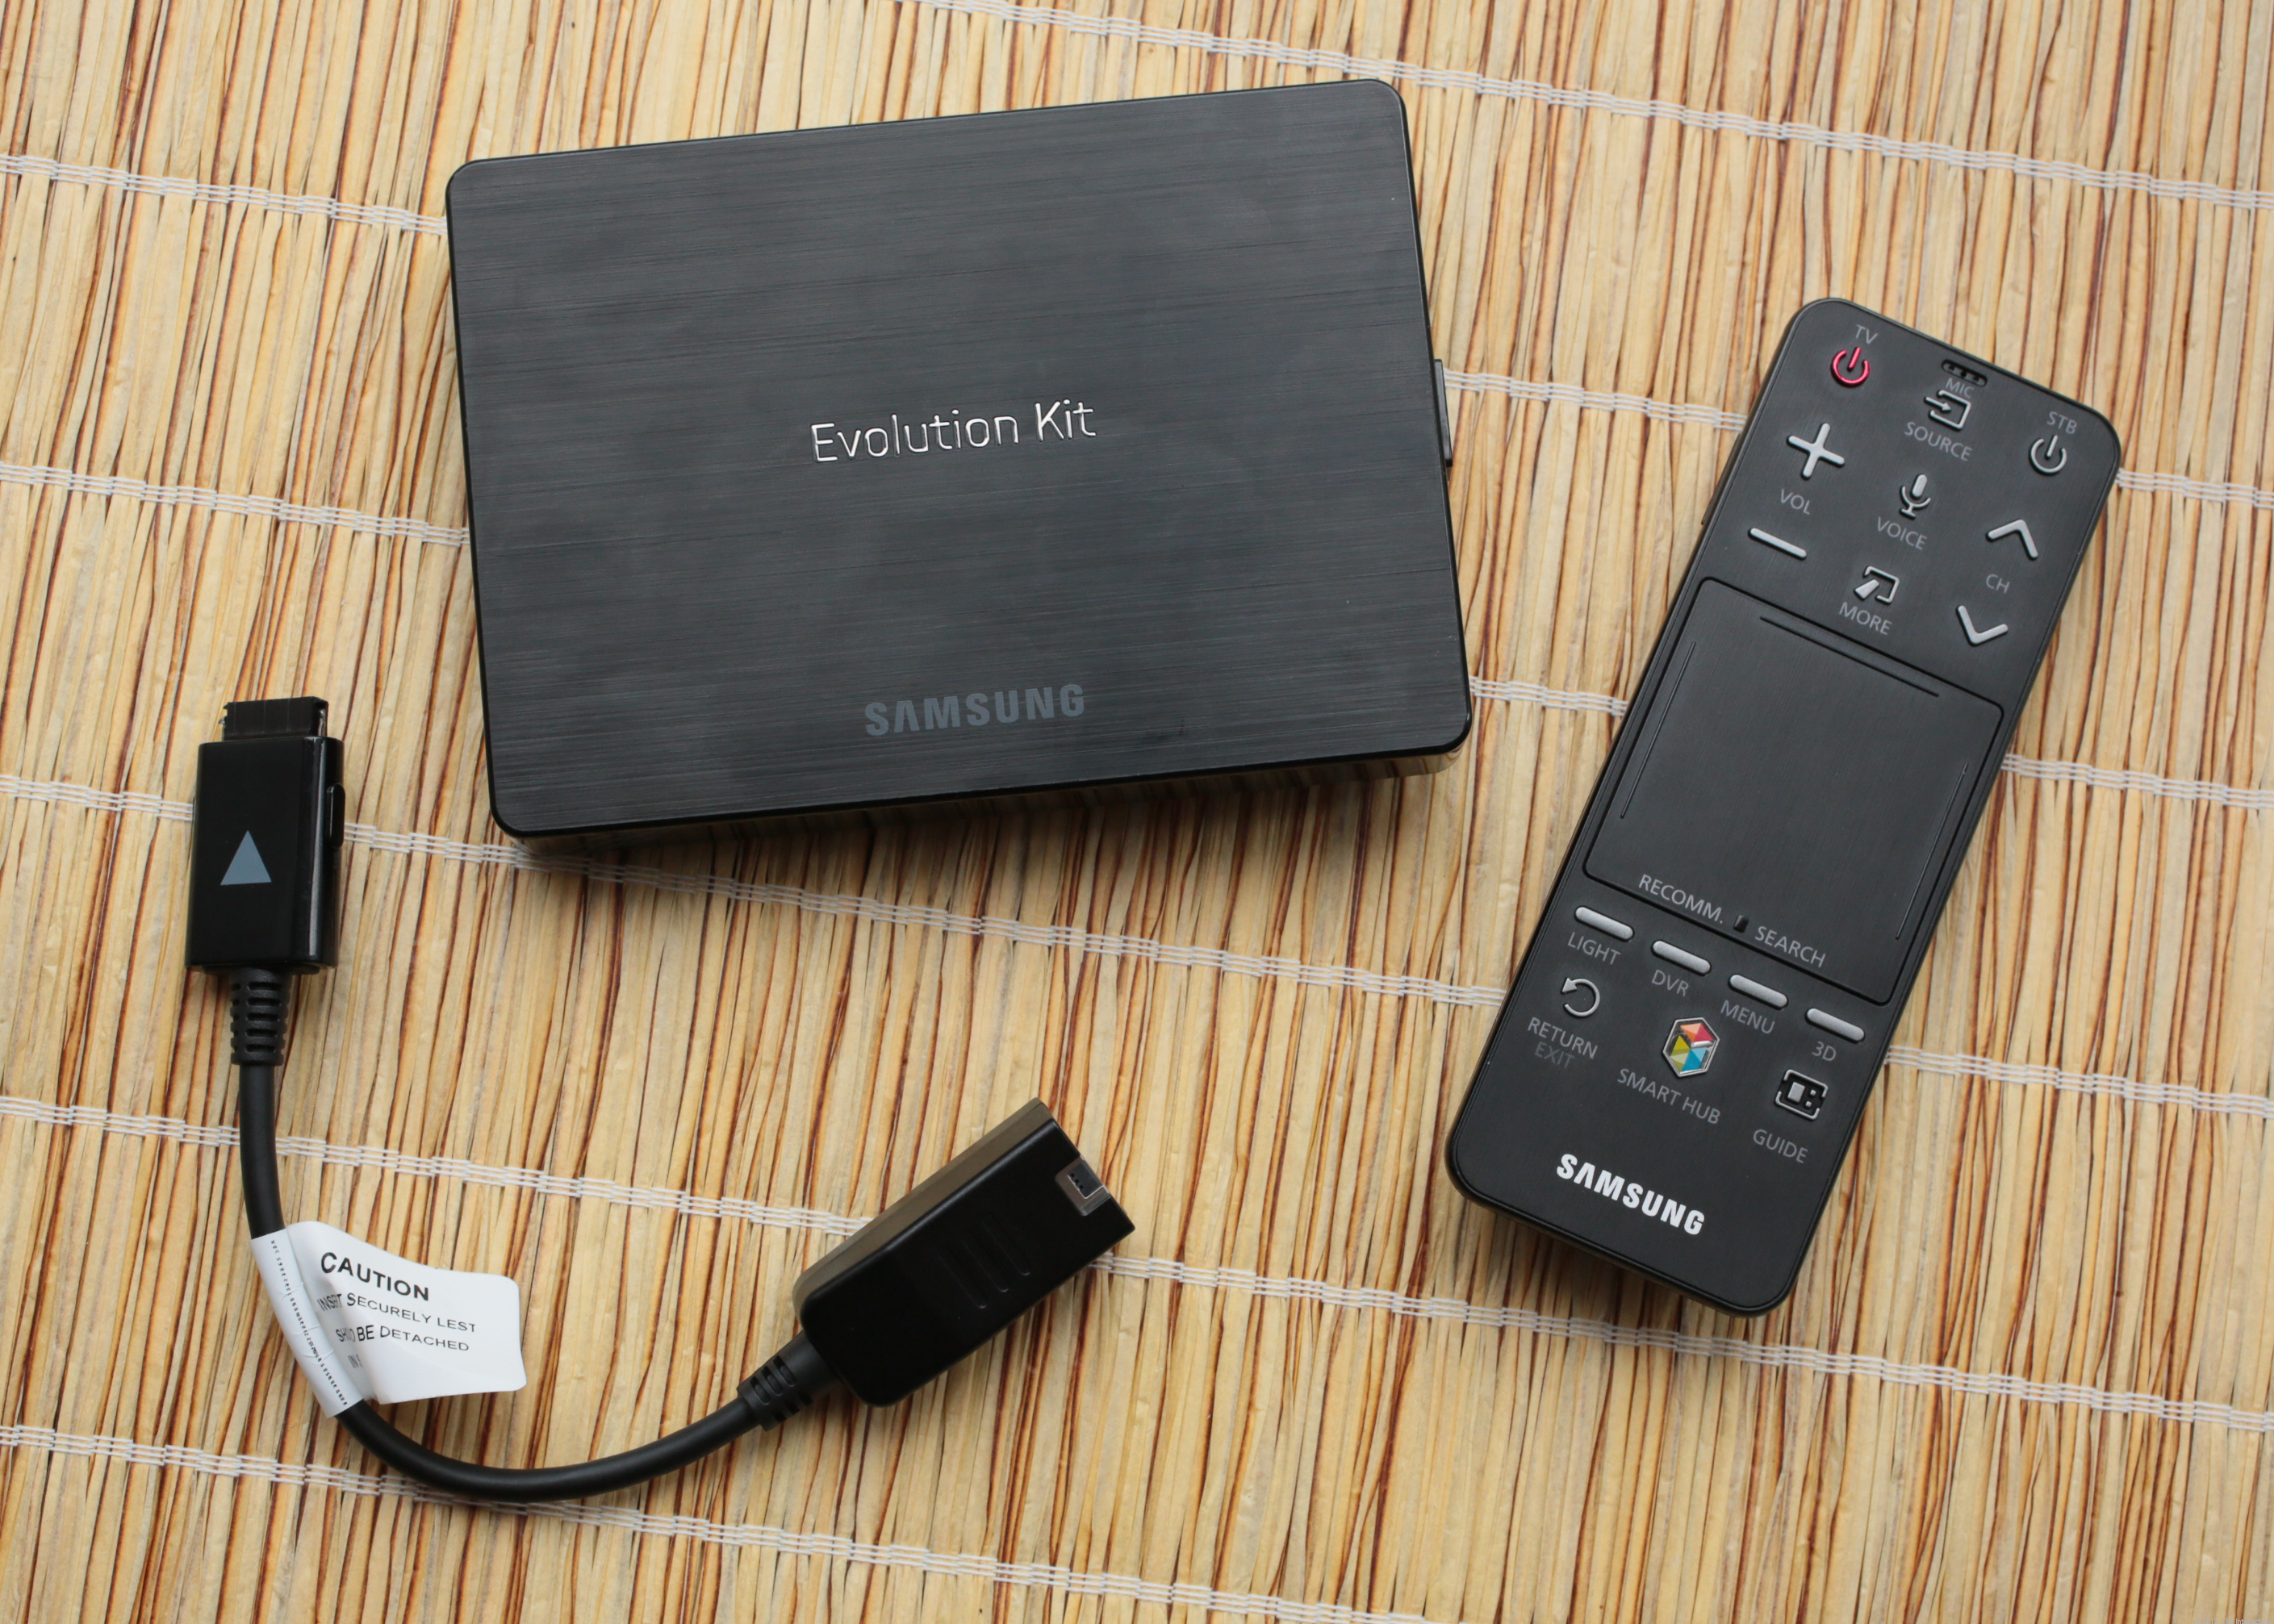 Samsung SEK-1000 Evolution Kit